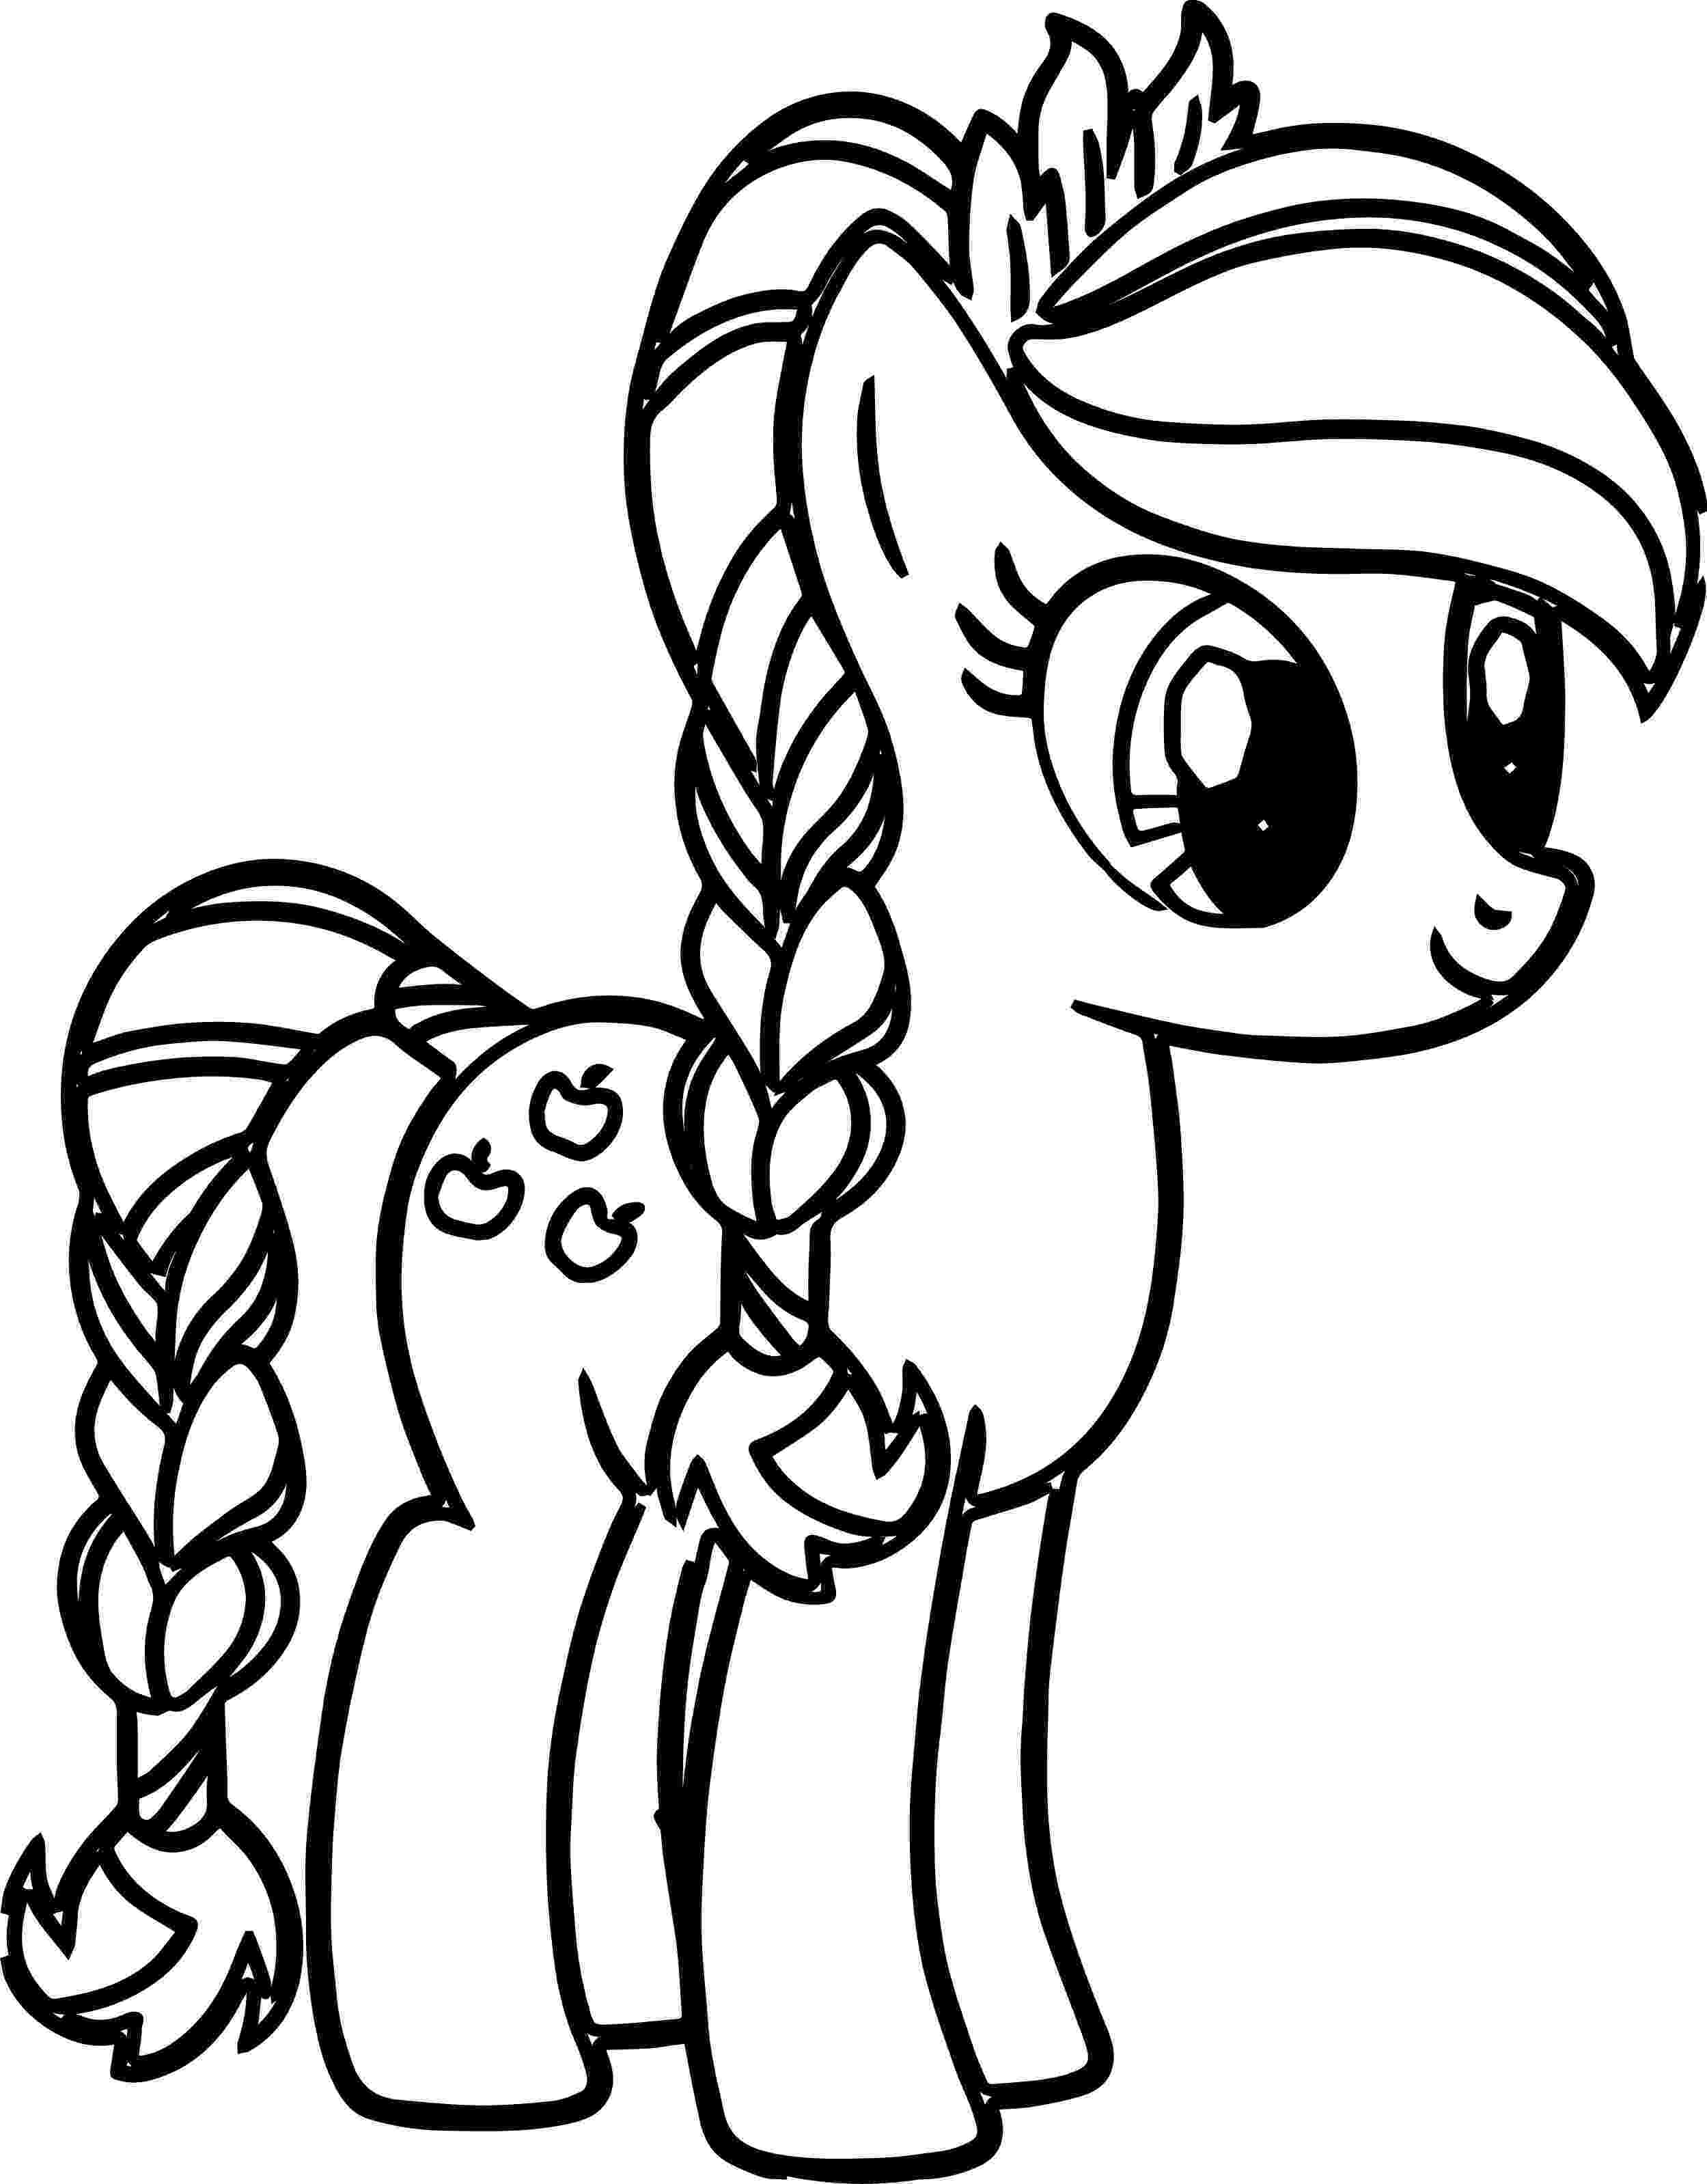 mlp coloring book games pony cartoon my little pony coloring pages coloring mlp book games